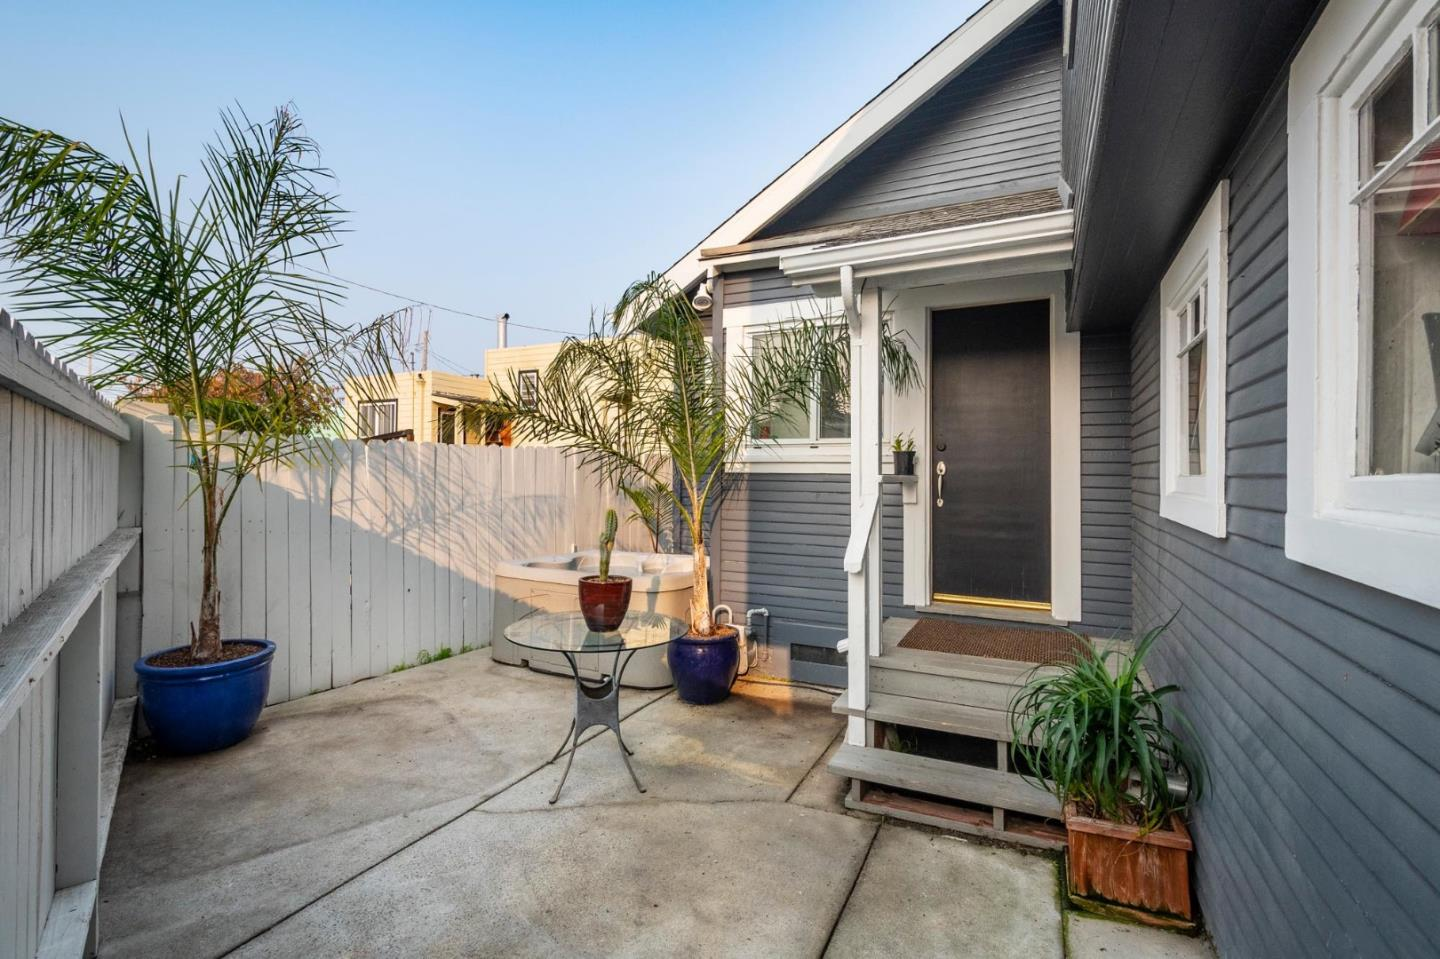 409 No San Anselmo Avenue San Bruno, CA 94066 - MLS #: ML81731257